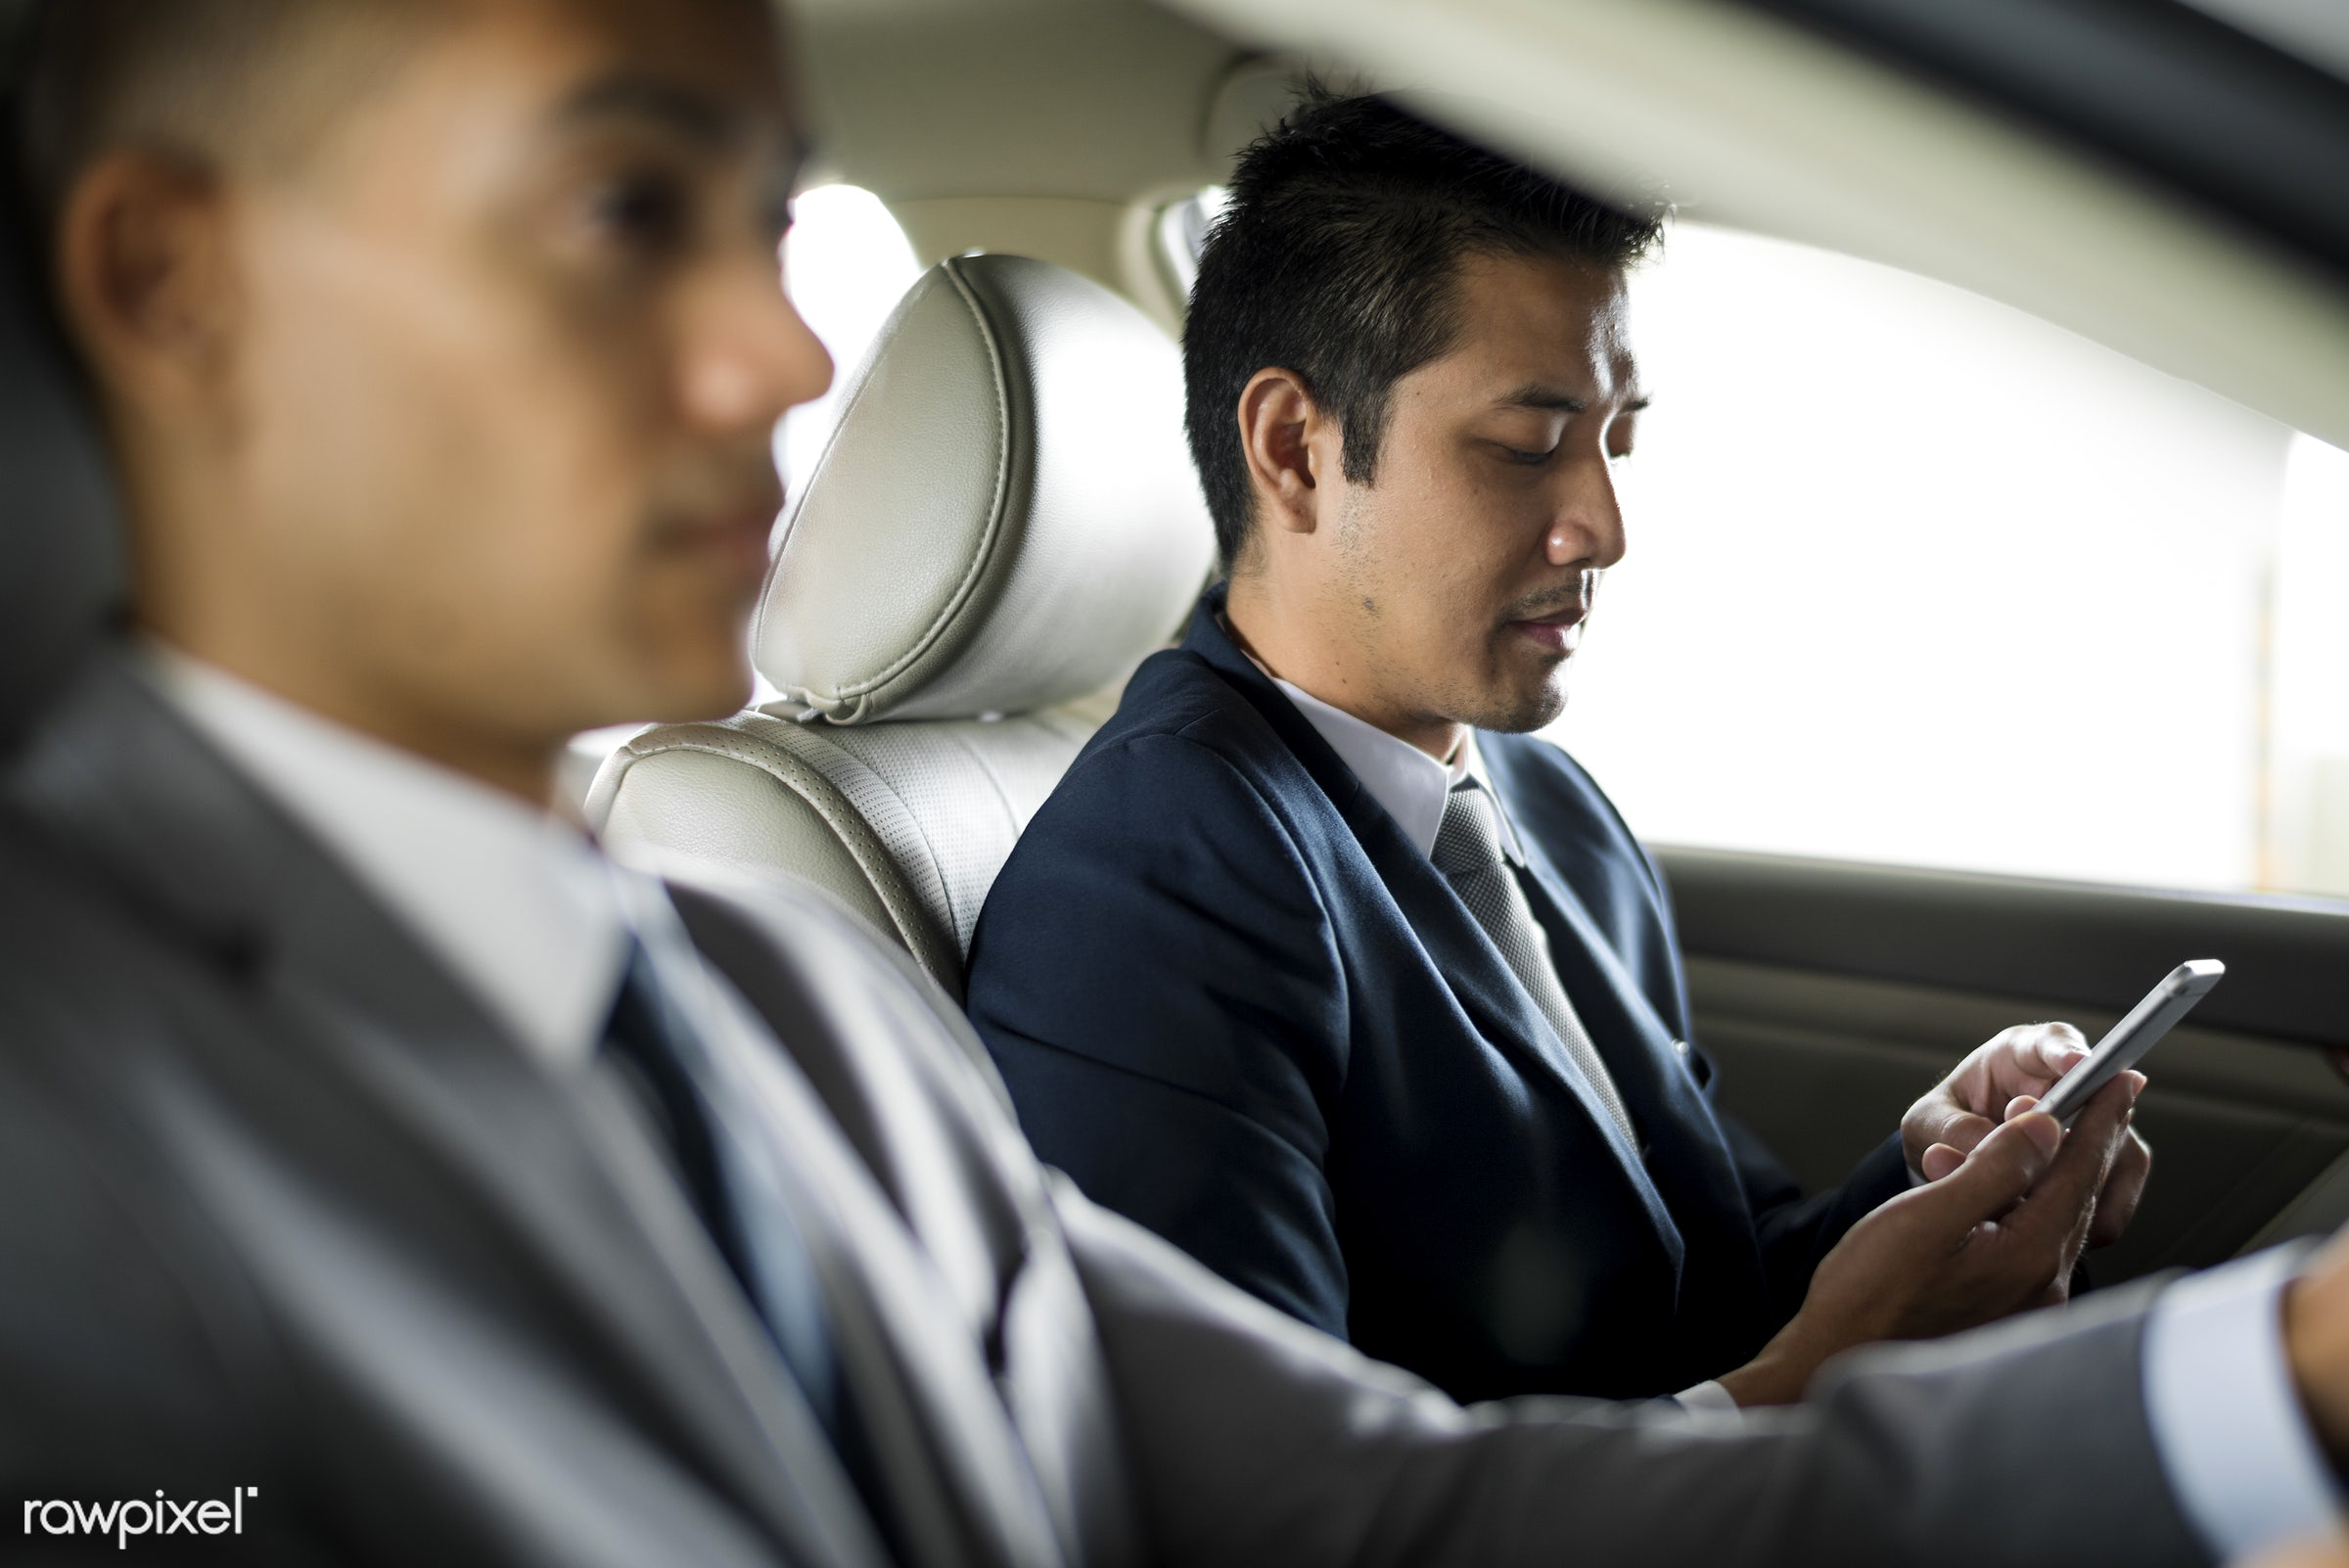 car, expression, face, person, suit and tie, white collar worker, tie, vehicle, use, travel, transportation, people,...